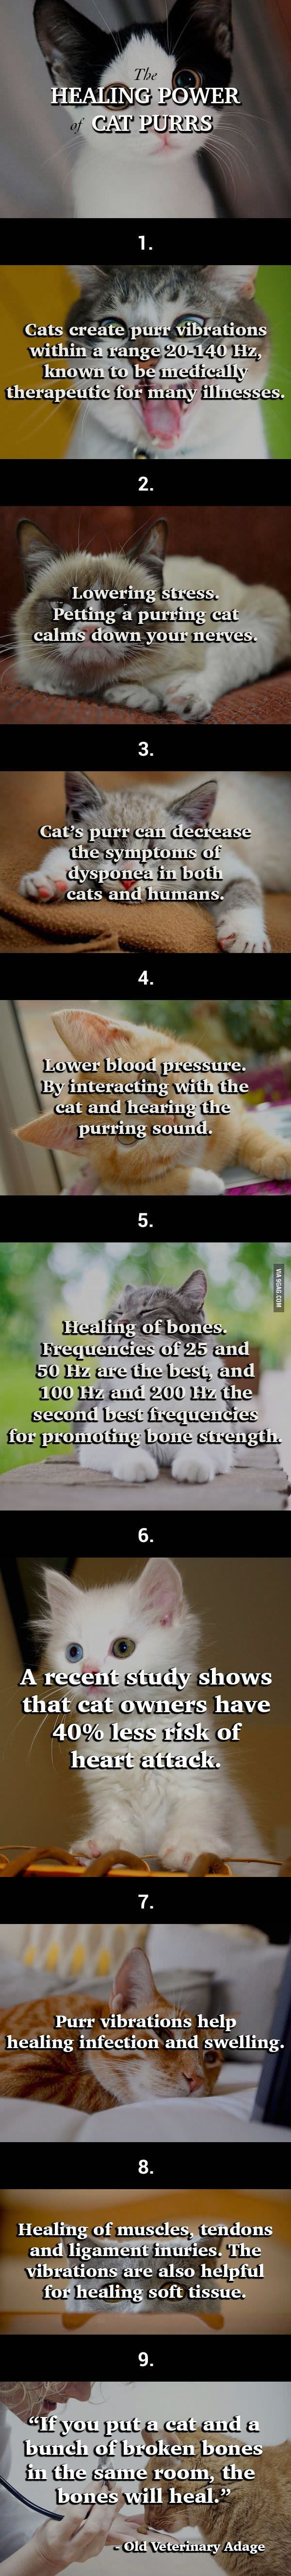 Trust Me! A Cat's Purr May Help You Live A Longer Life!